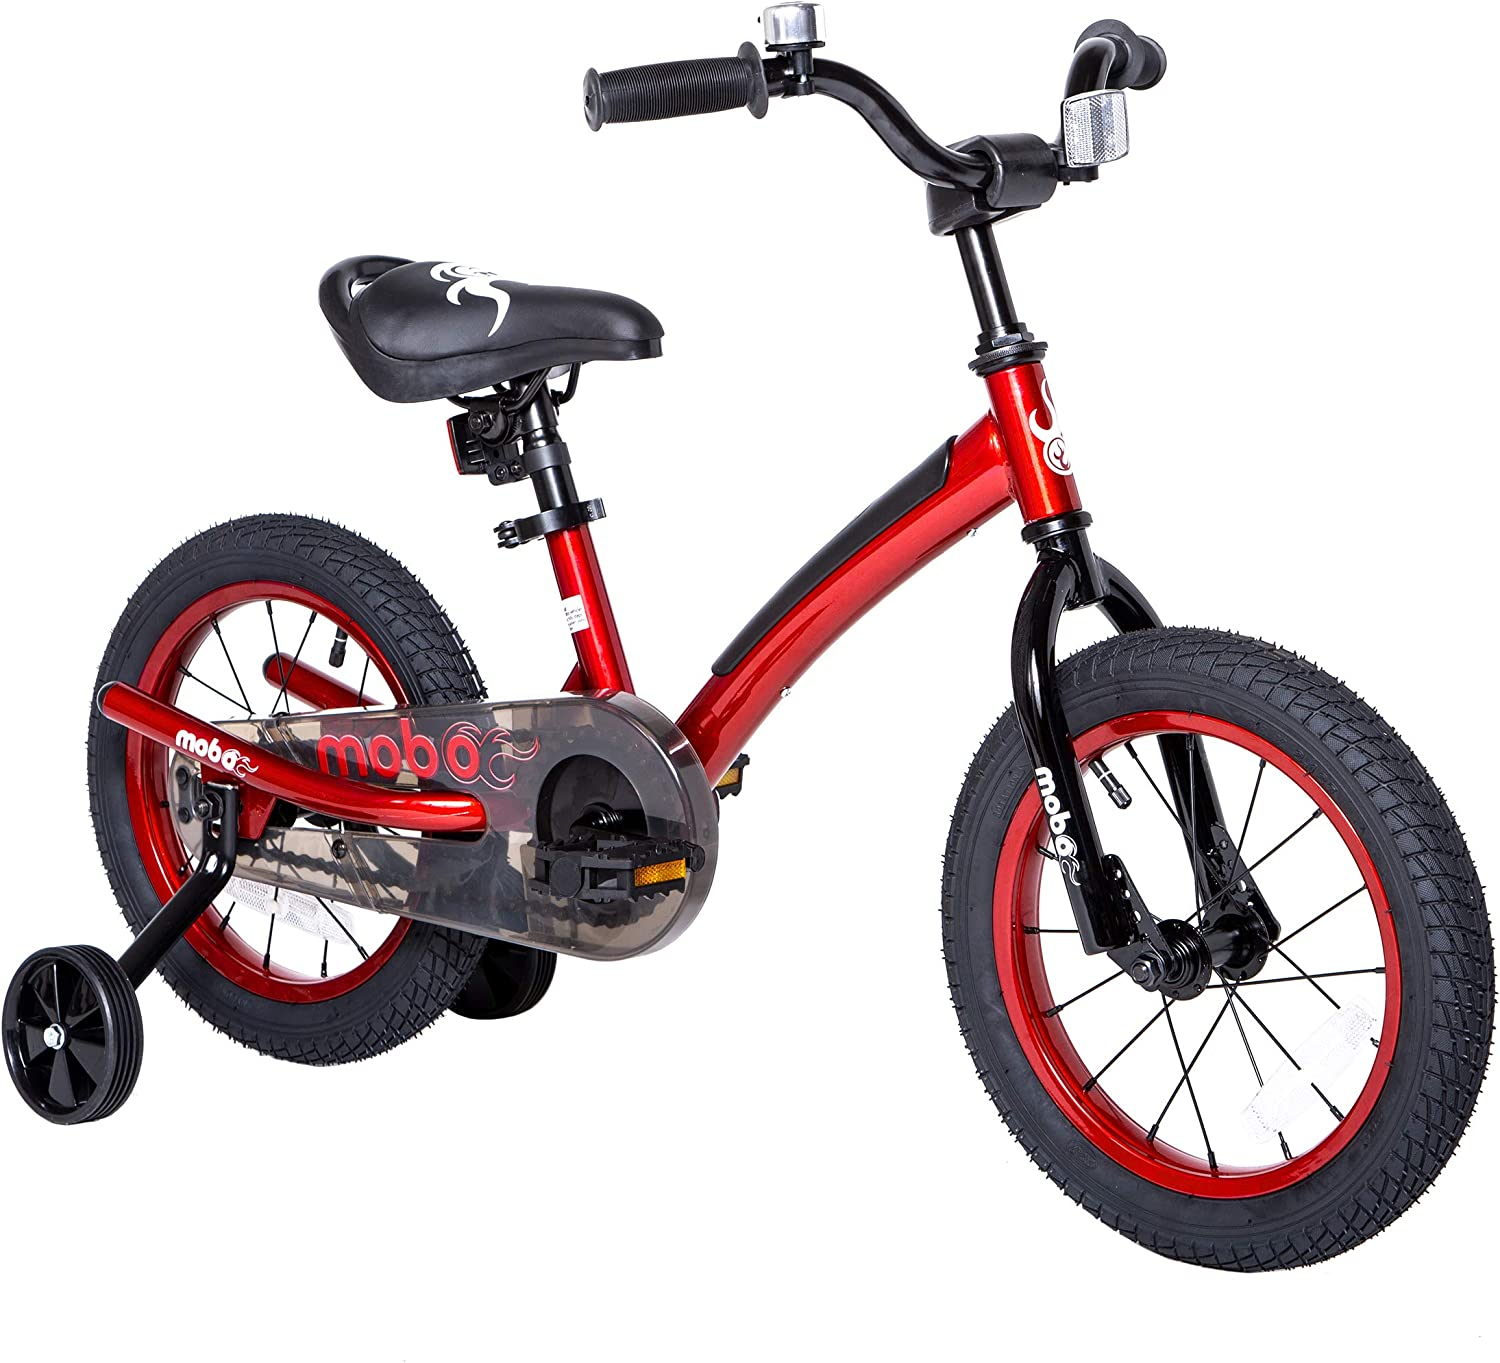 Bombing free shipping Mobo Bicycle-Training-Wheels First Bike 14âTraining Wheels. NEW w